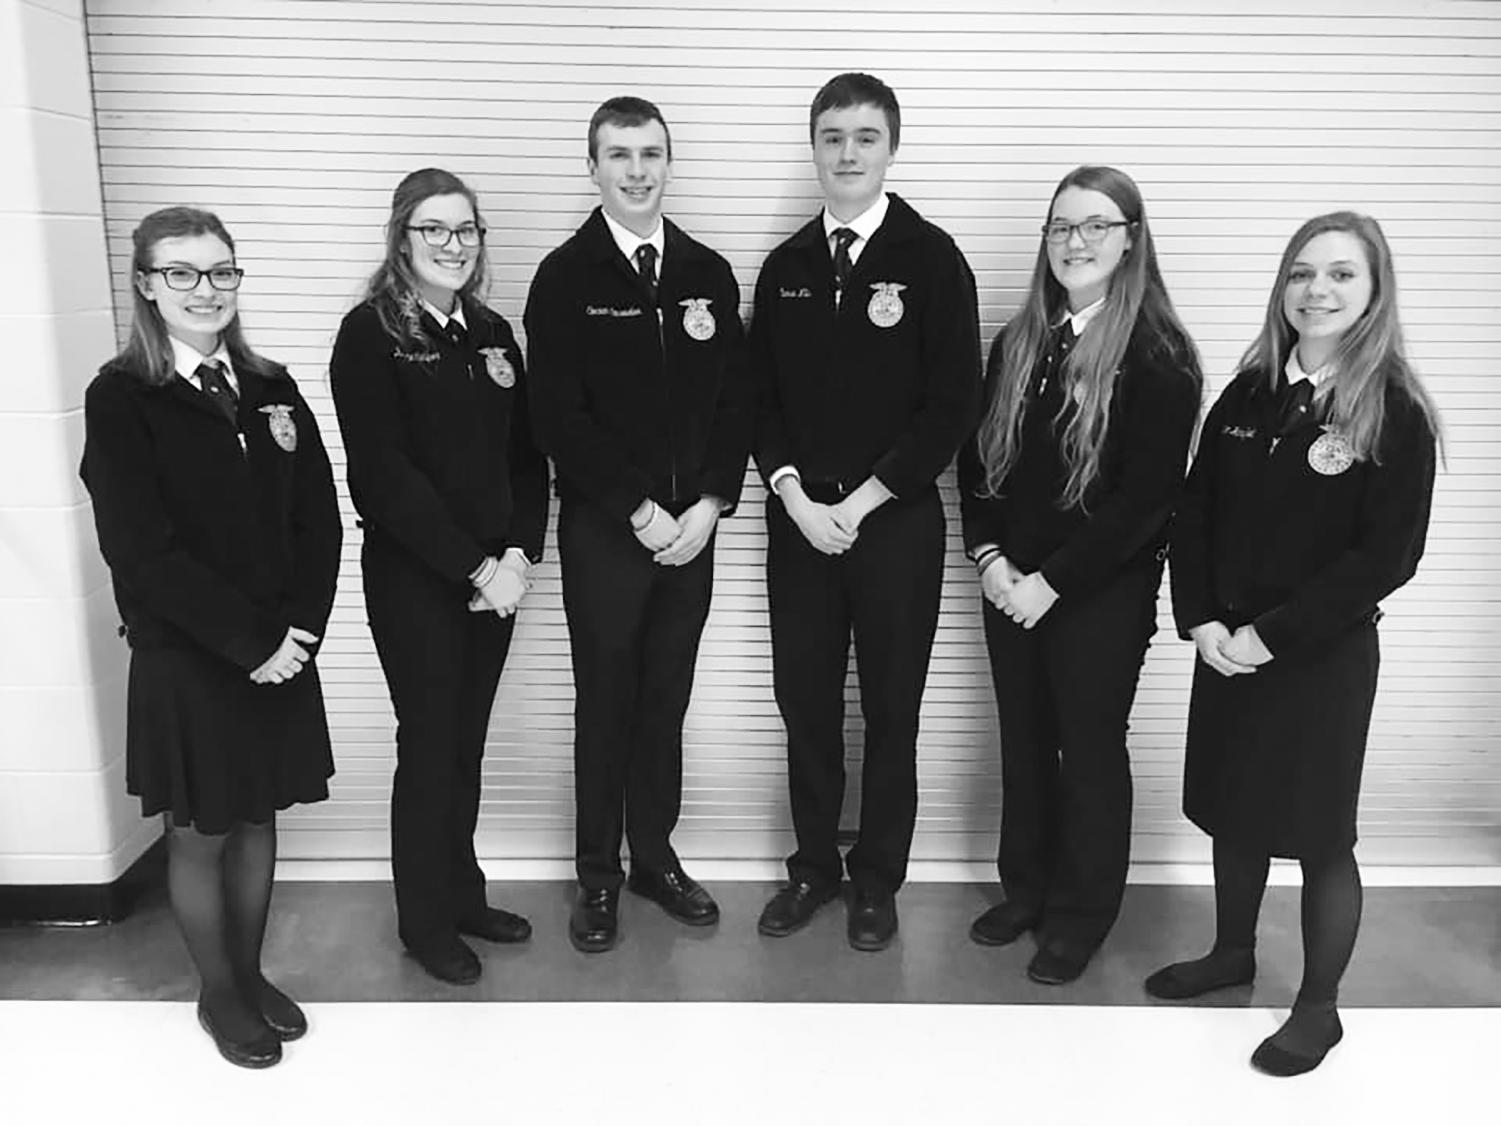 Parly Pro team demonstrates solid public speaking skills